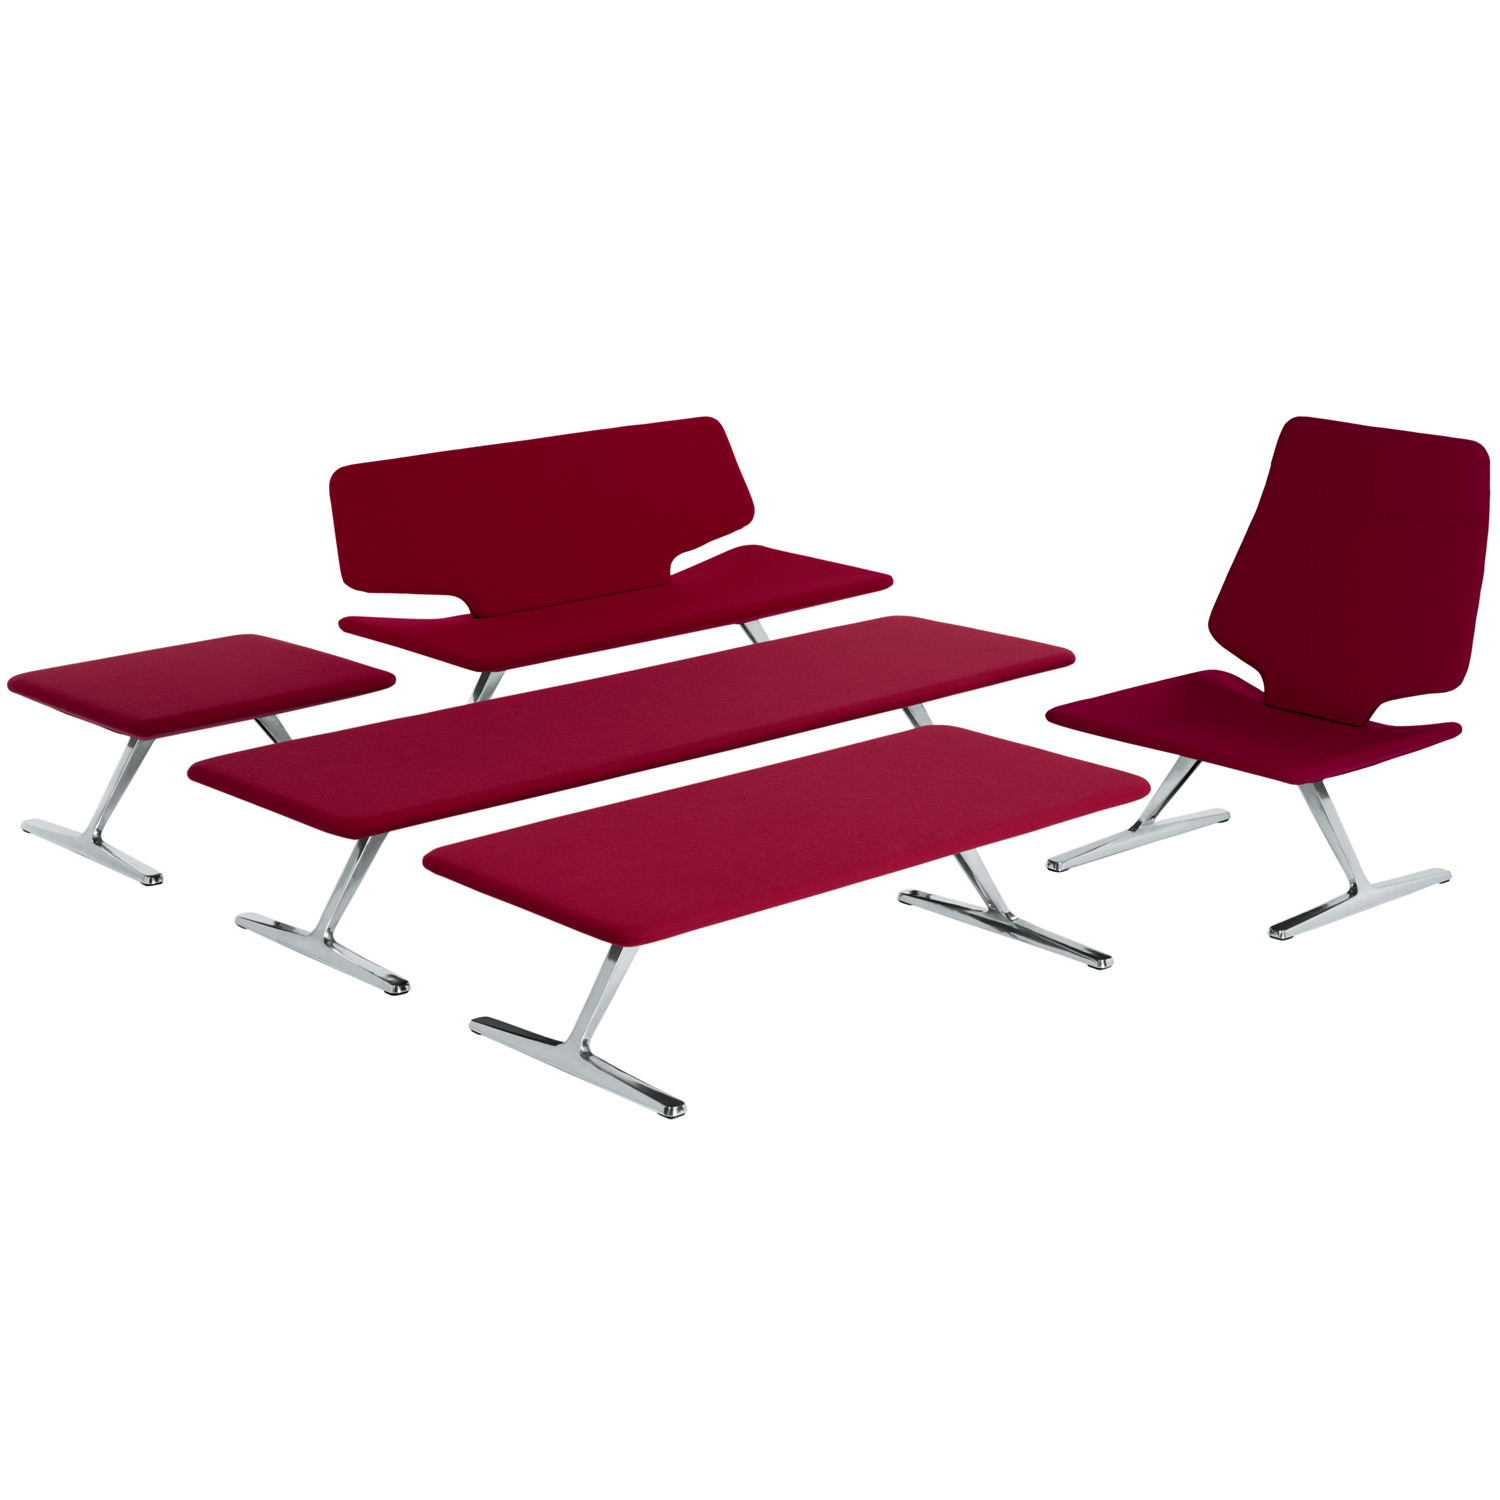 TT Lounge Seating Collection